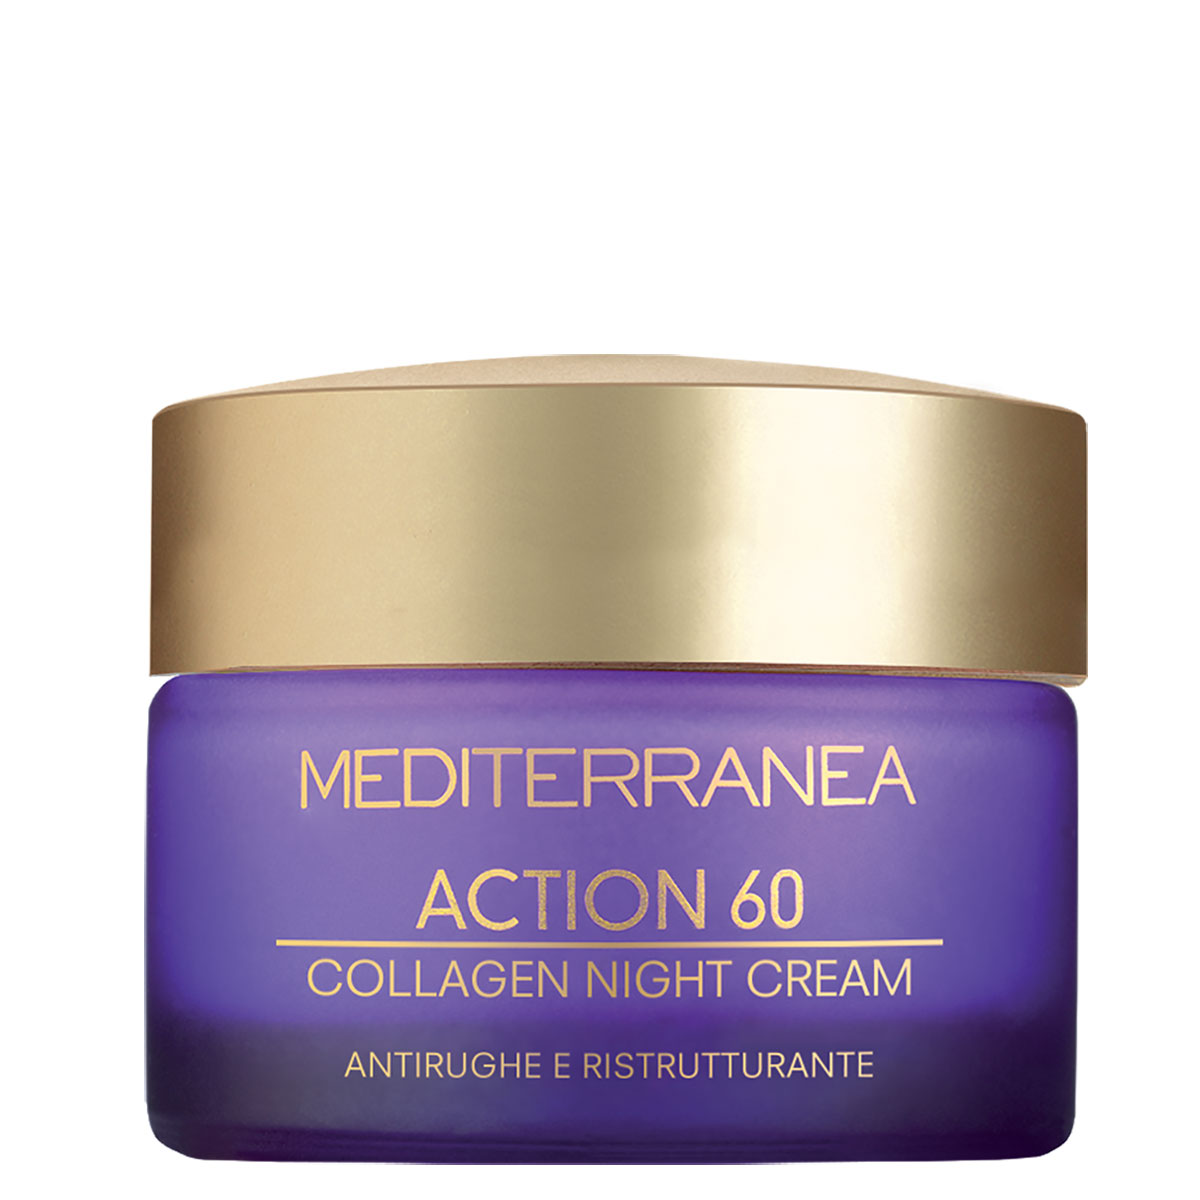 ACTION 60 COLLAGEN NIGHT CREAM